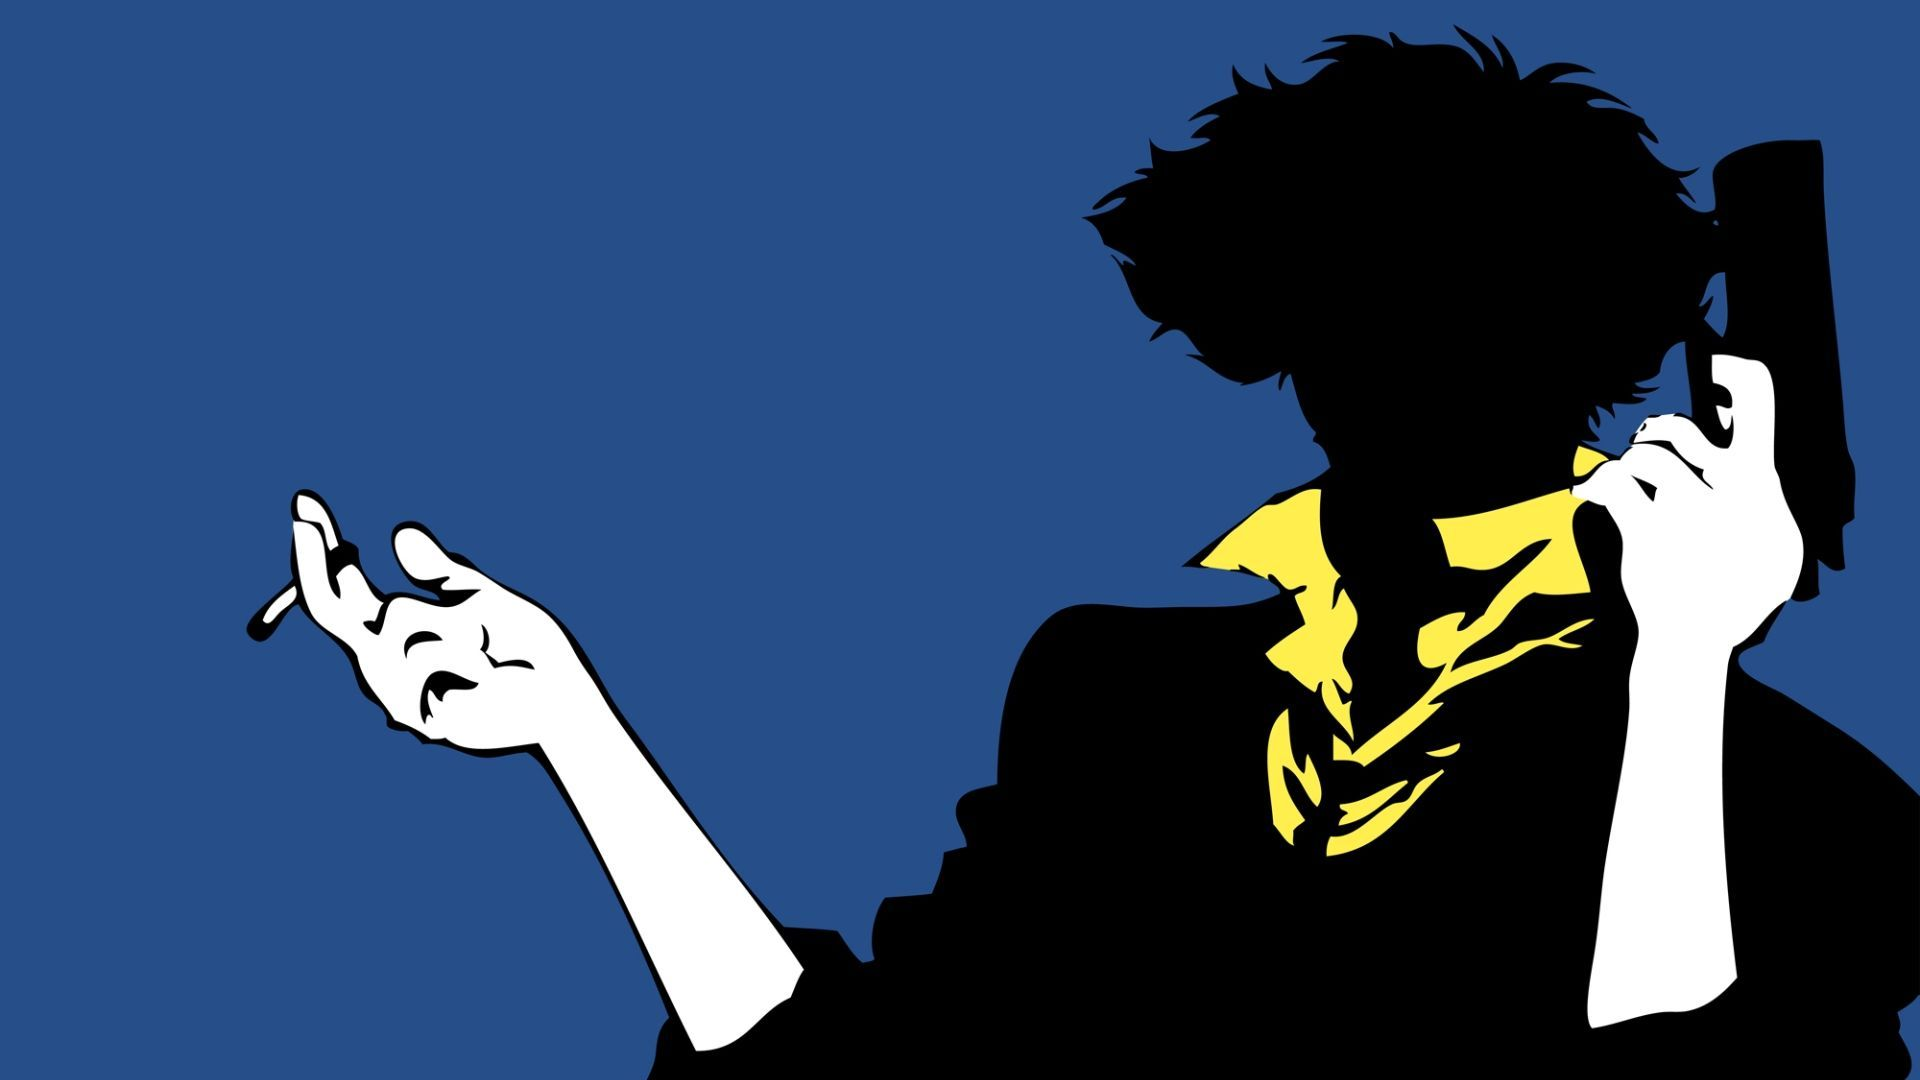 Cowboy Bebop Wallpapers Wallpaper Cave Cowboy Bebop Wallpapers Cowboy Bebop Anime Artwork